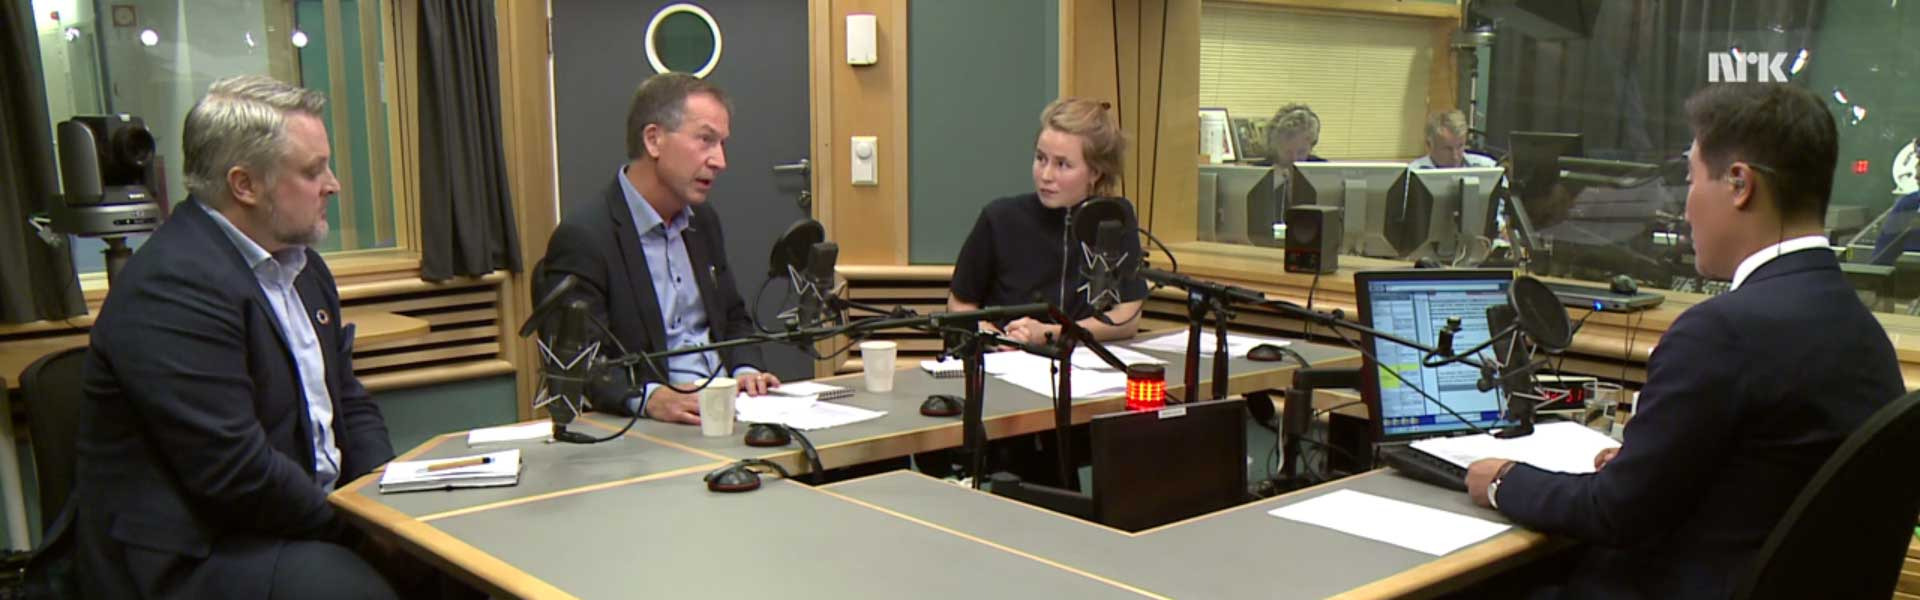 Director of the Norwegian Nobel Institute, Olav Njølstad in a radio debate 26. October 2017 with Anja Bakken Riise, head of Future of our hands.